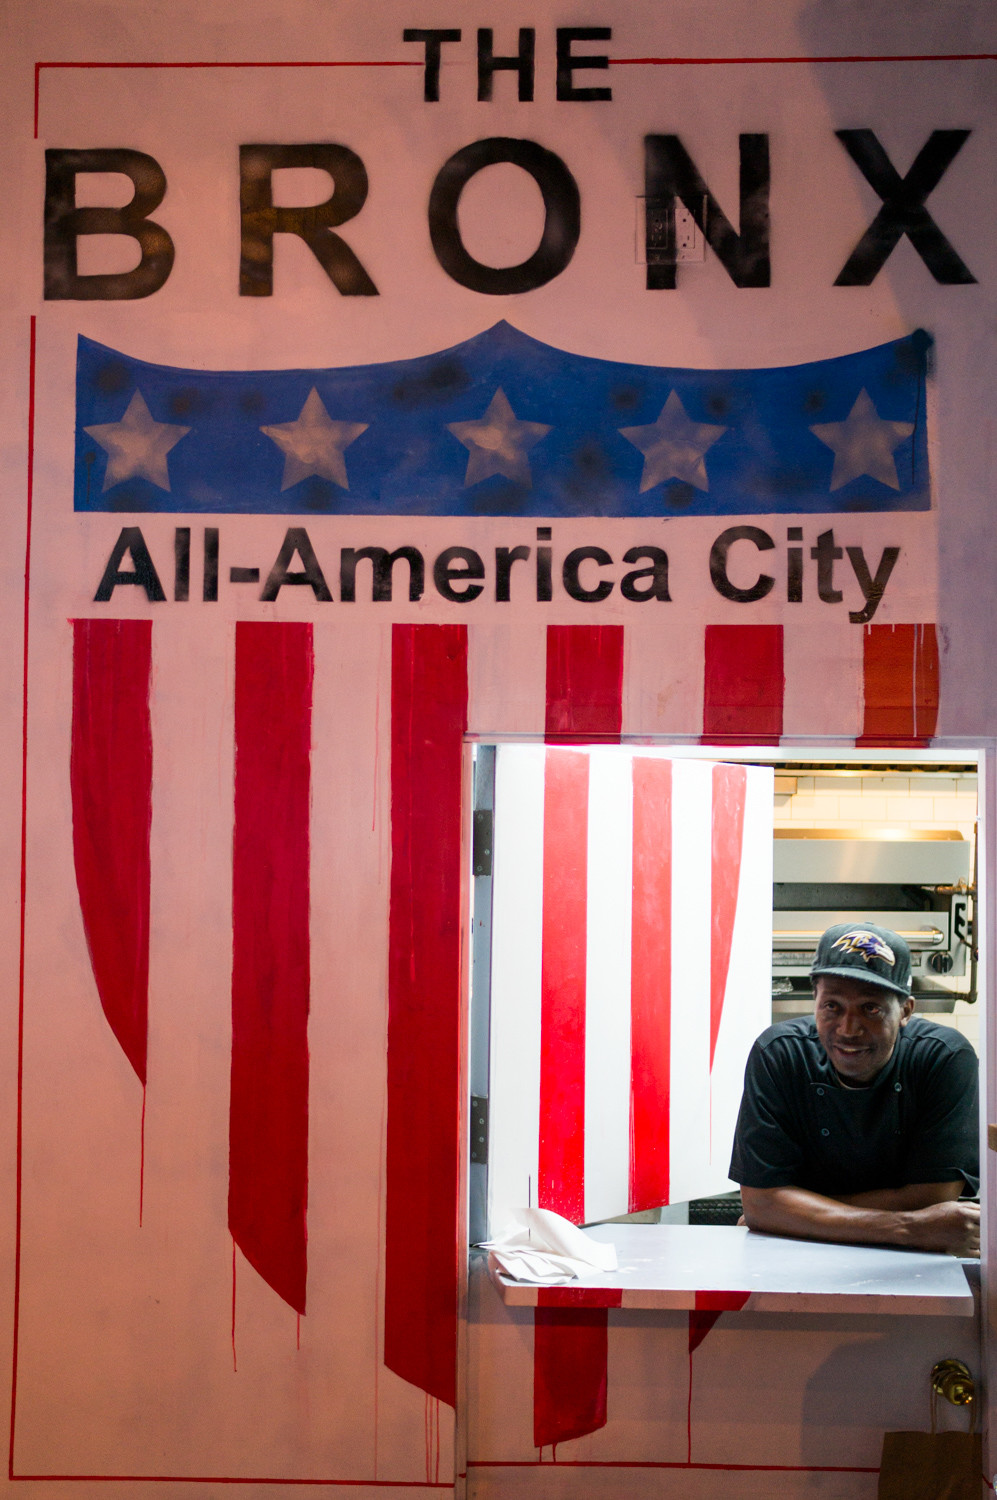 A cook rests his arms at the handoff window in The Bronx Public, who plays a vital role for the Bronx Public's team.